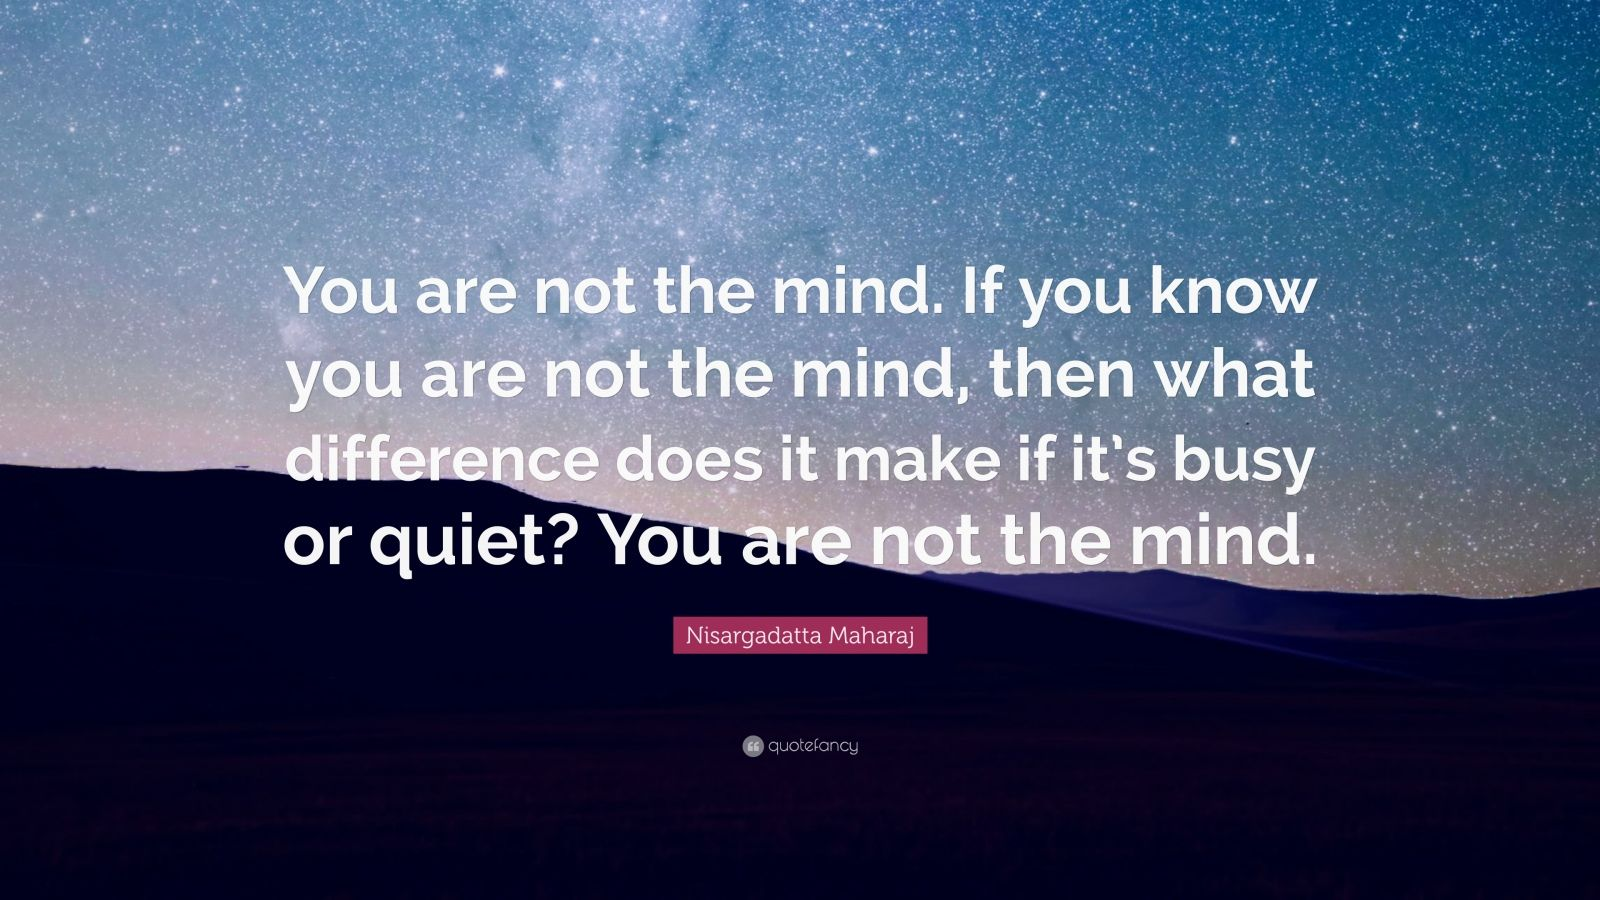 """Nisargadatta Maharaj Quote: """"You are not the mind. If you know you are not the mind, then what difference does it make if it's busy or quiet? You are not the mind."""""""